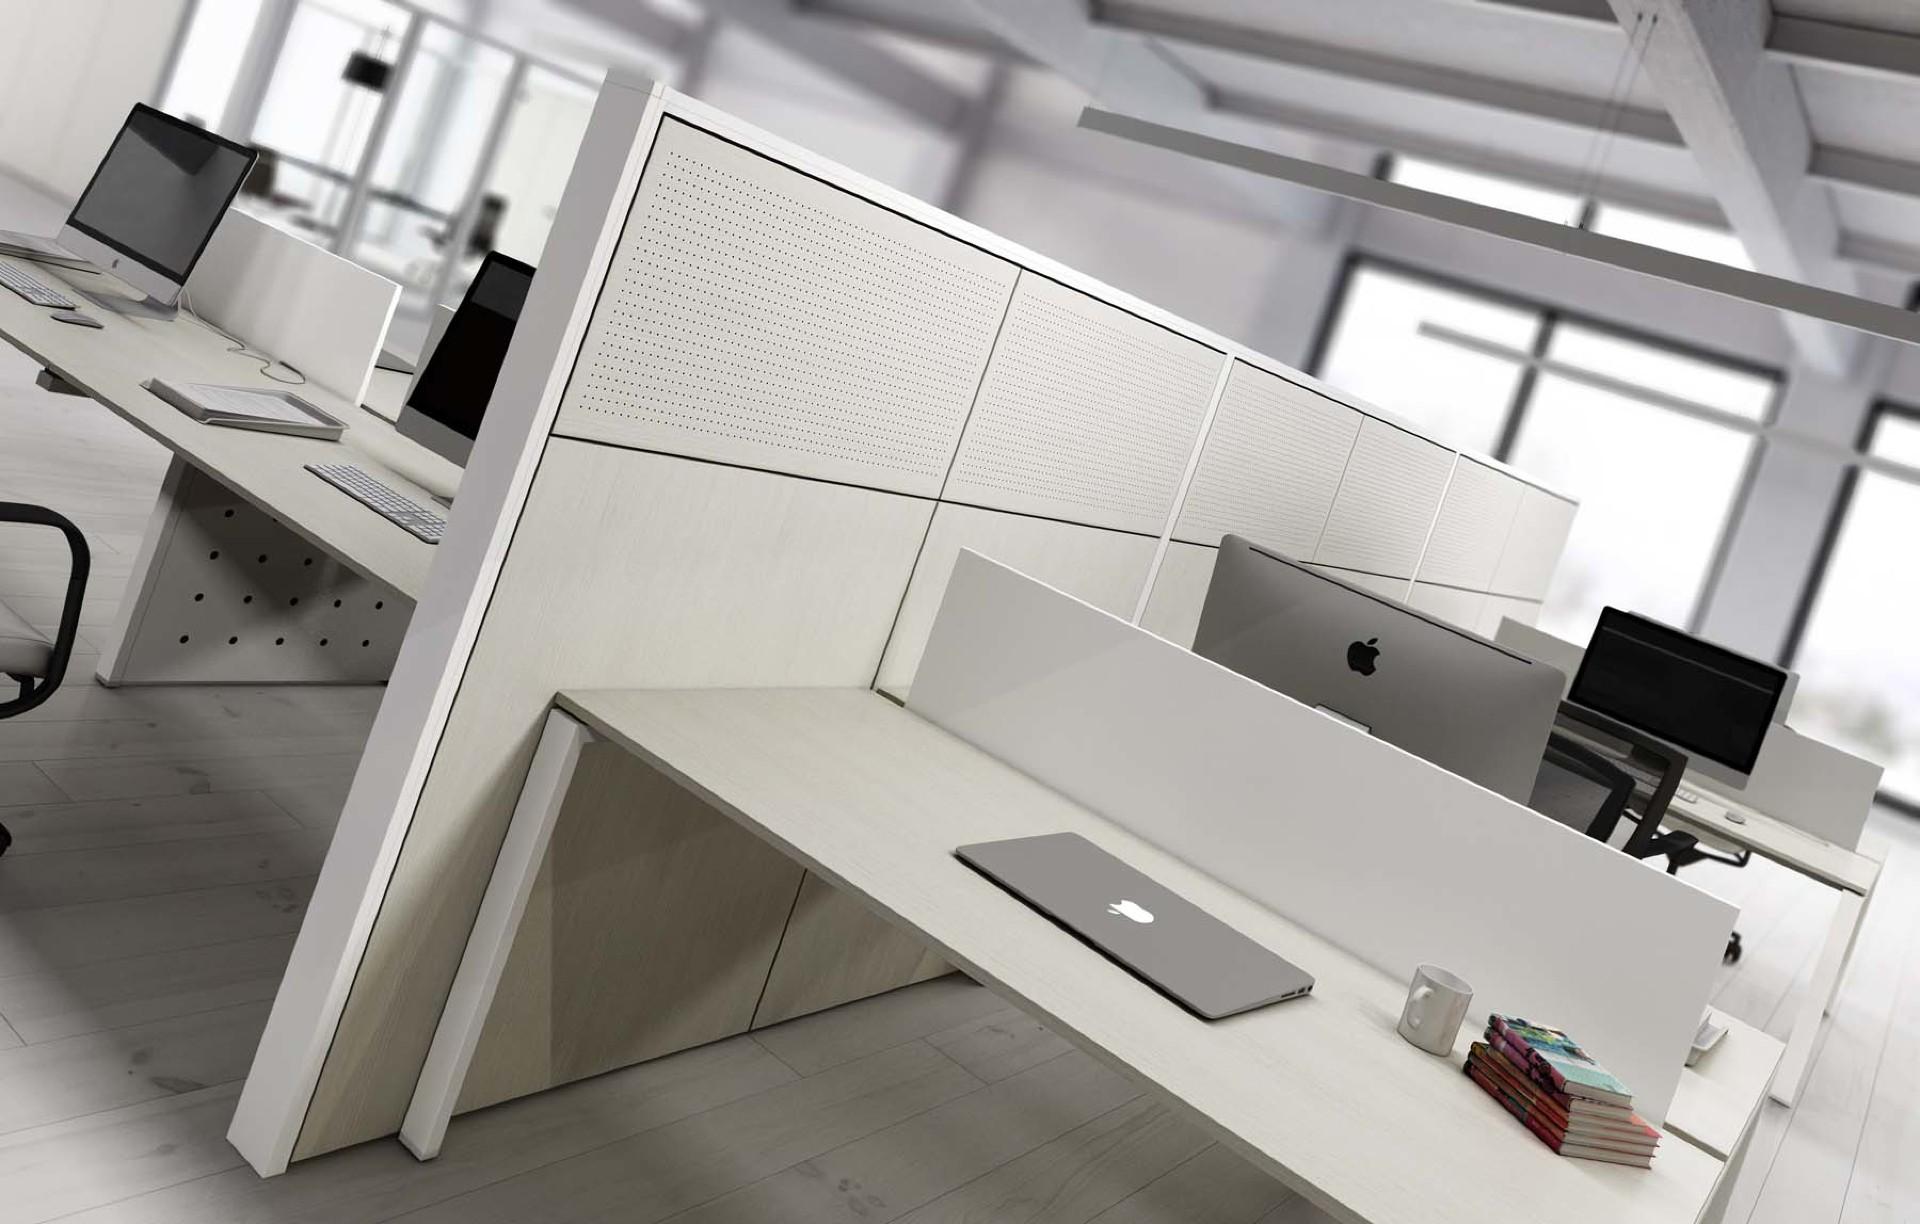 tecna-open-panel-bench-system-open-space-partition-04.jpg